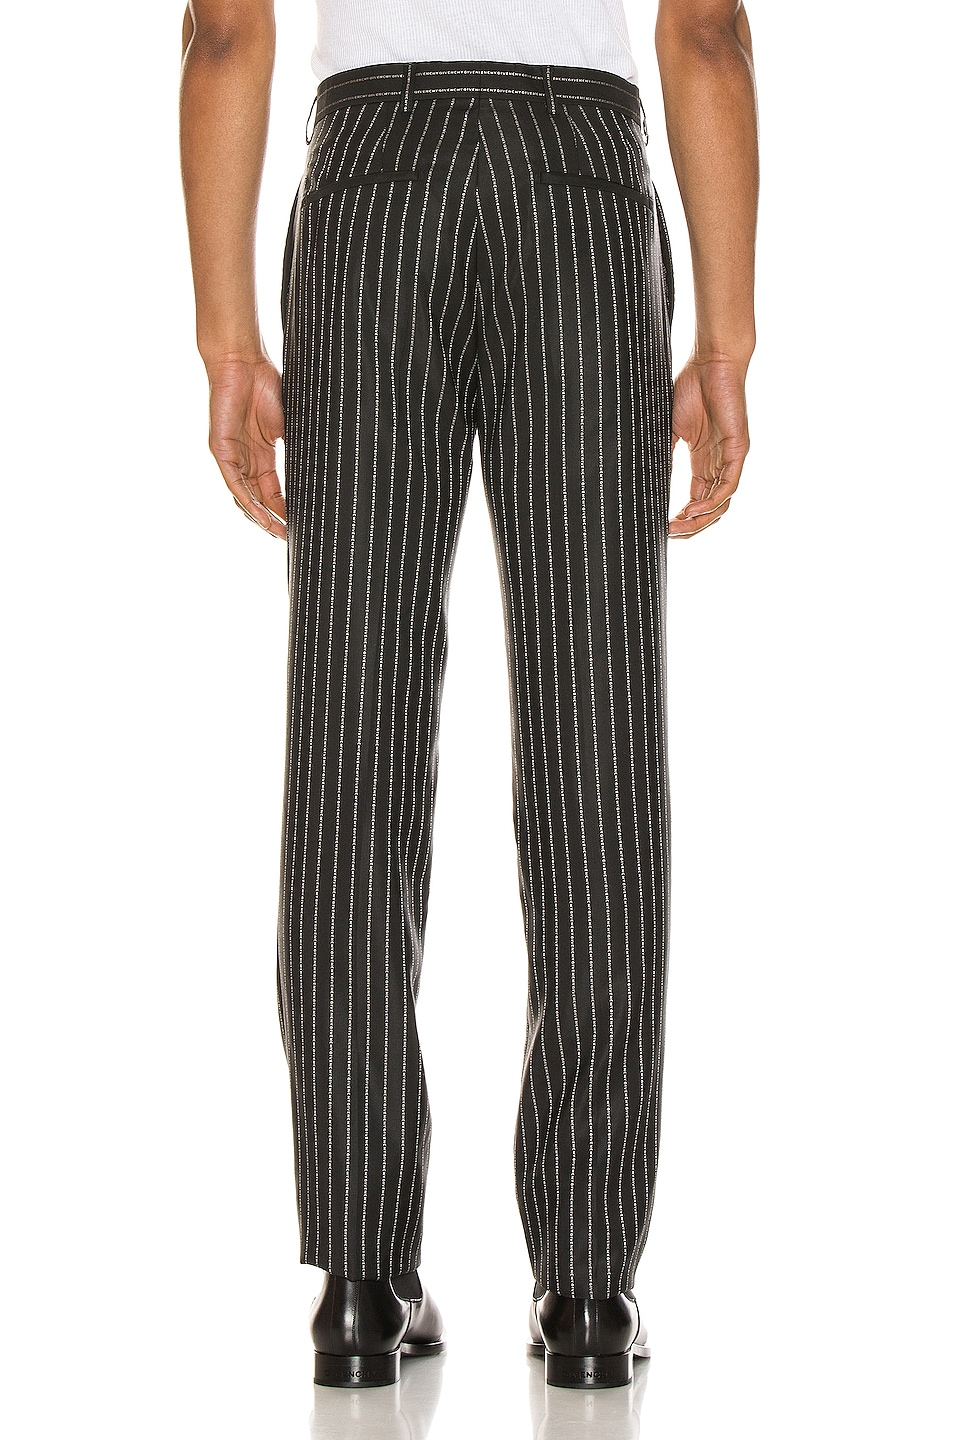 Image 7 of Givenchy Blazer & Trouser Suit in Black & White